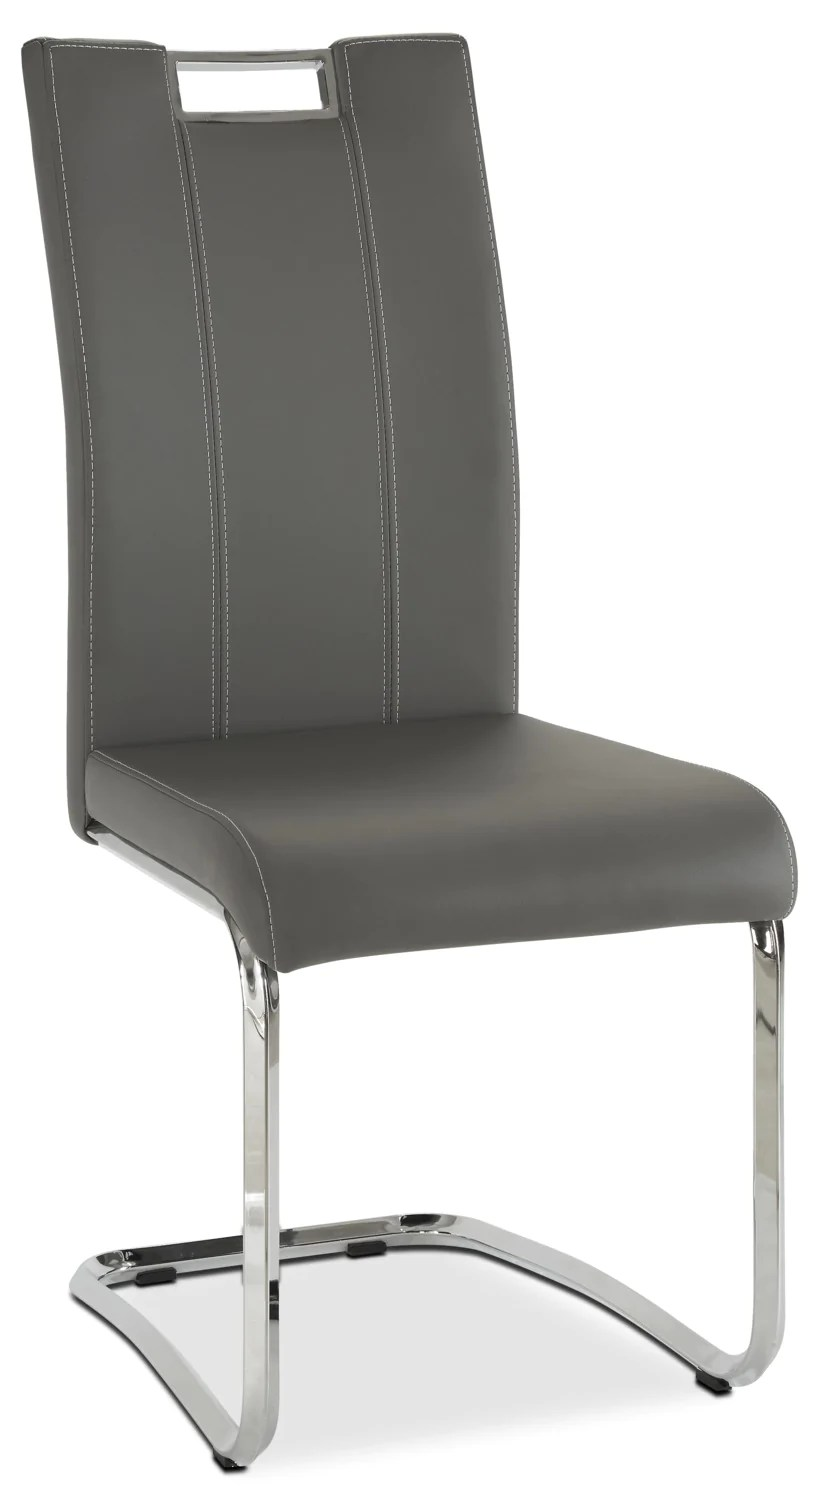 Will Chair Tuxedo Dining Chair Grey